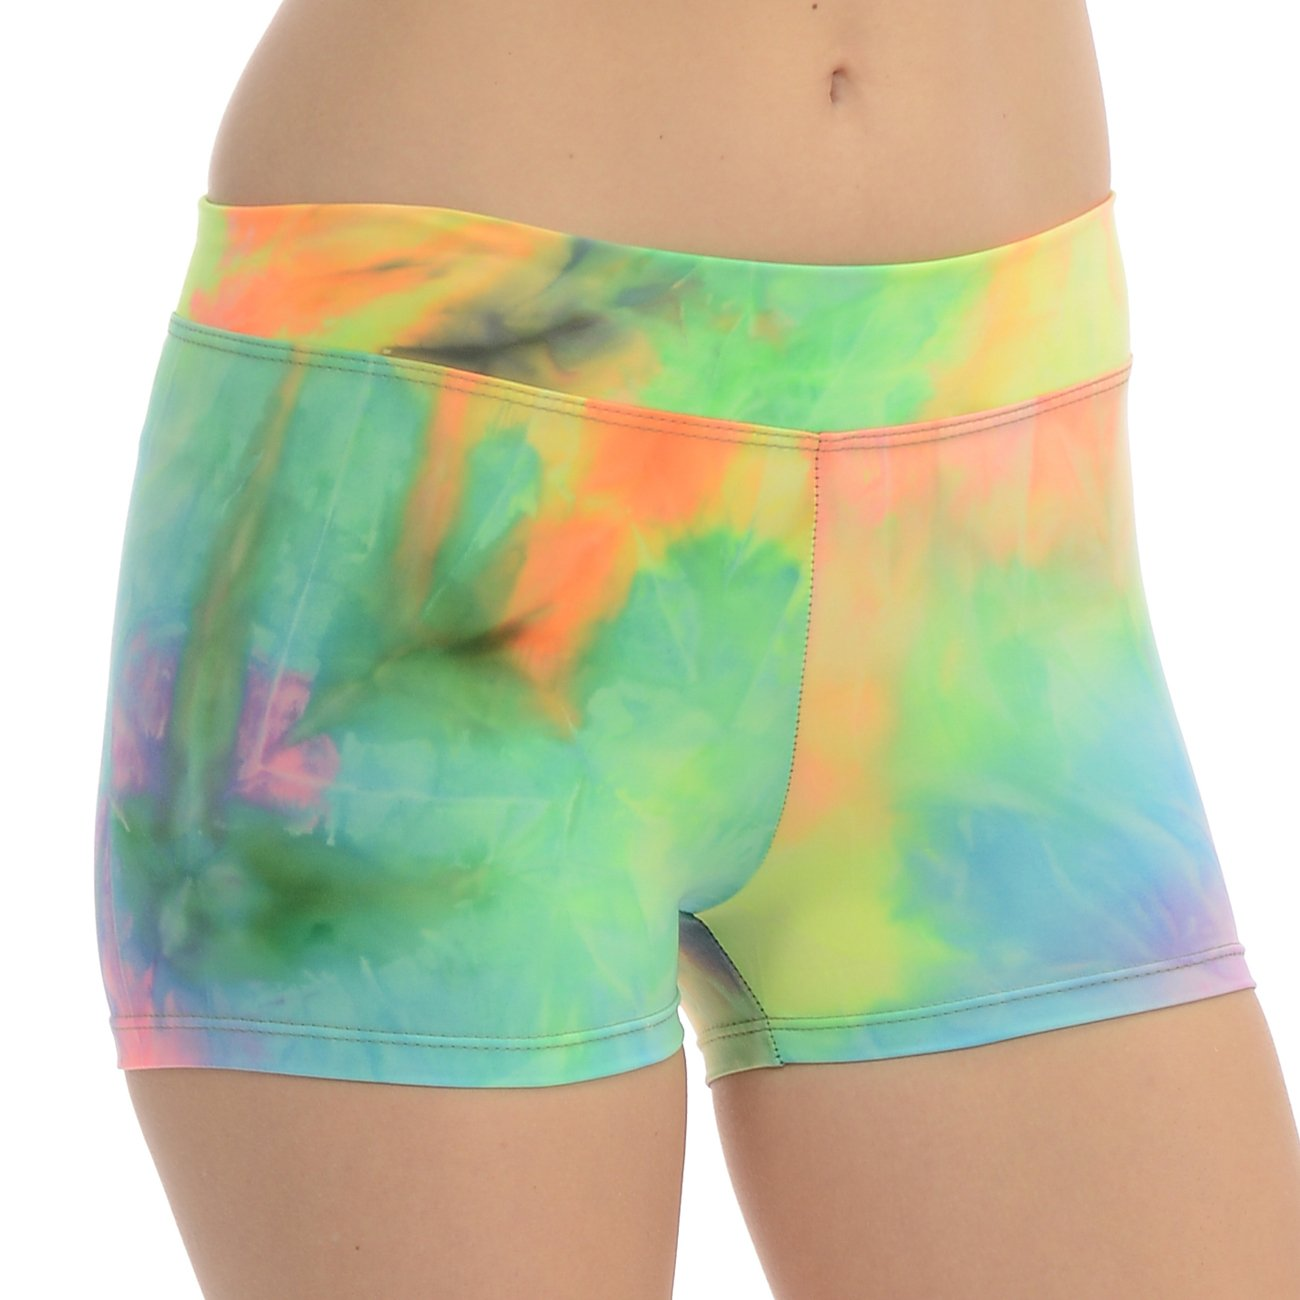 ANZA Girls Active Wear Dance Booty Shorts-Tie-Dye,X-Small(2/4) by Anza Collection